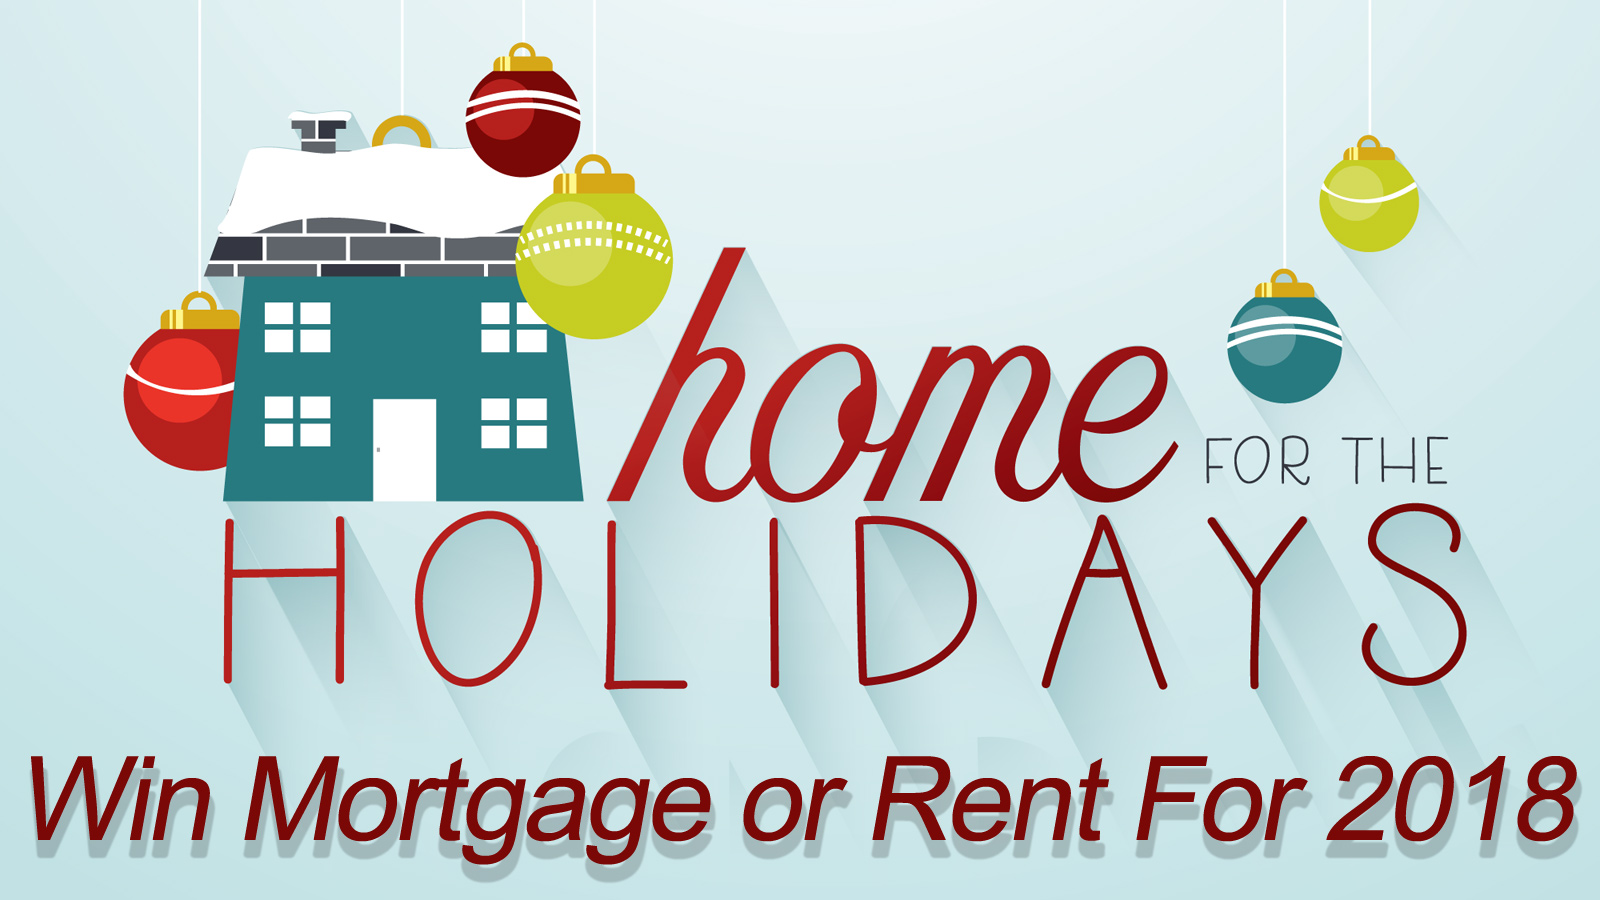 home_for_the_holidays_logo16x9_1509473213562.jpg